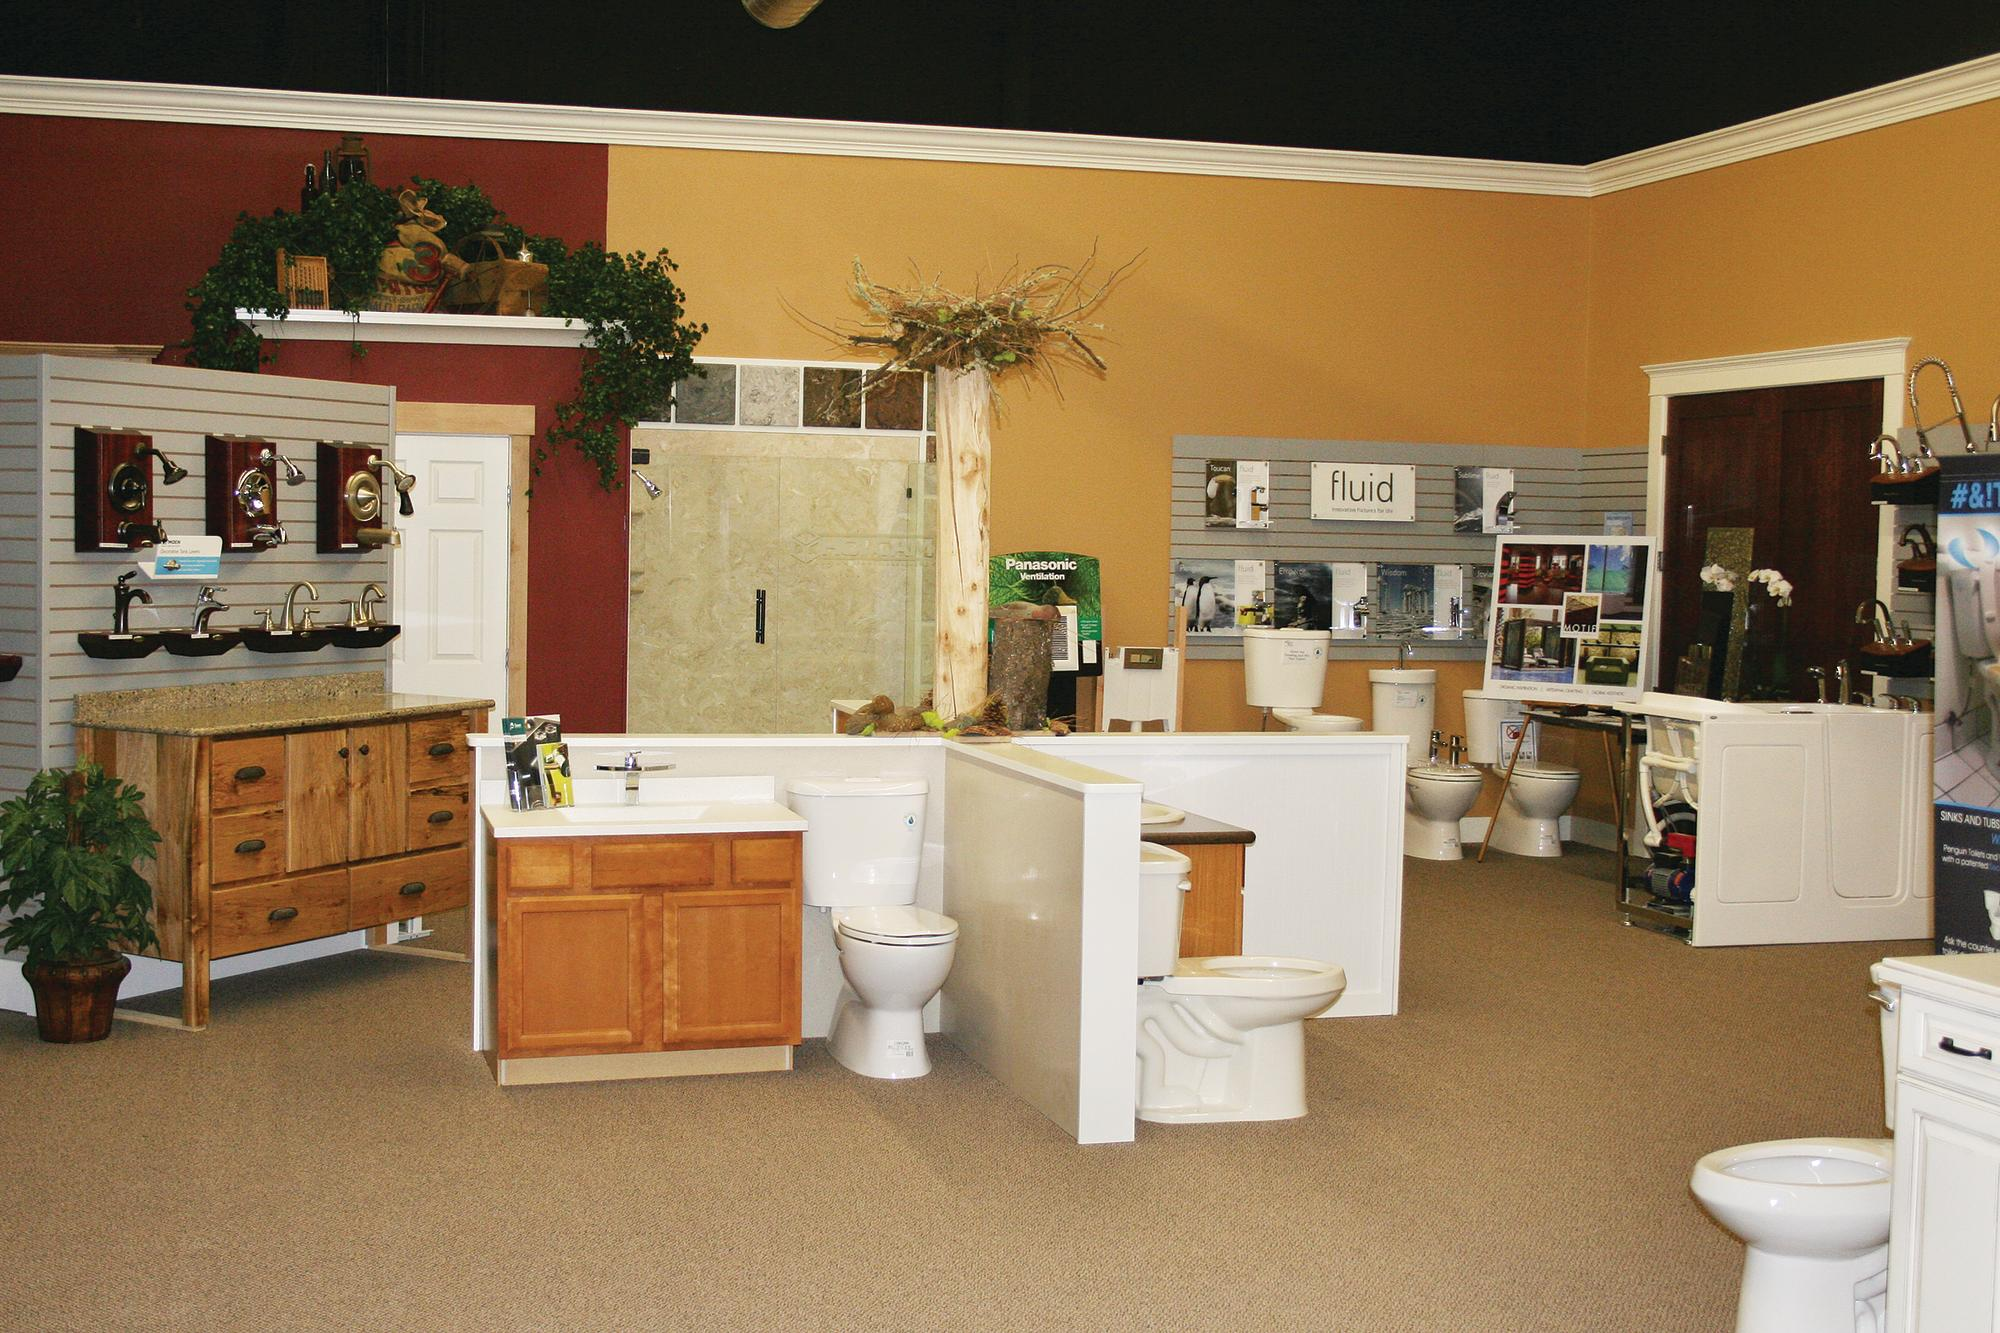 Buy And Boost Buying A Kitchen And Bath Company Remodeling Exit Strategy Product Selection